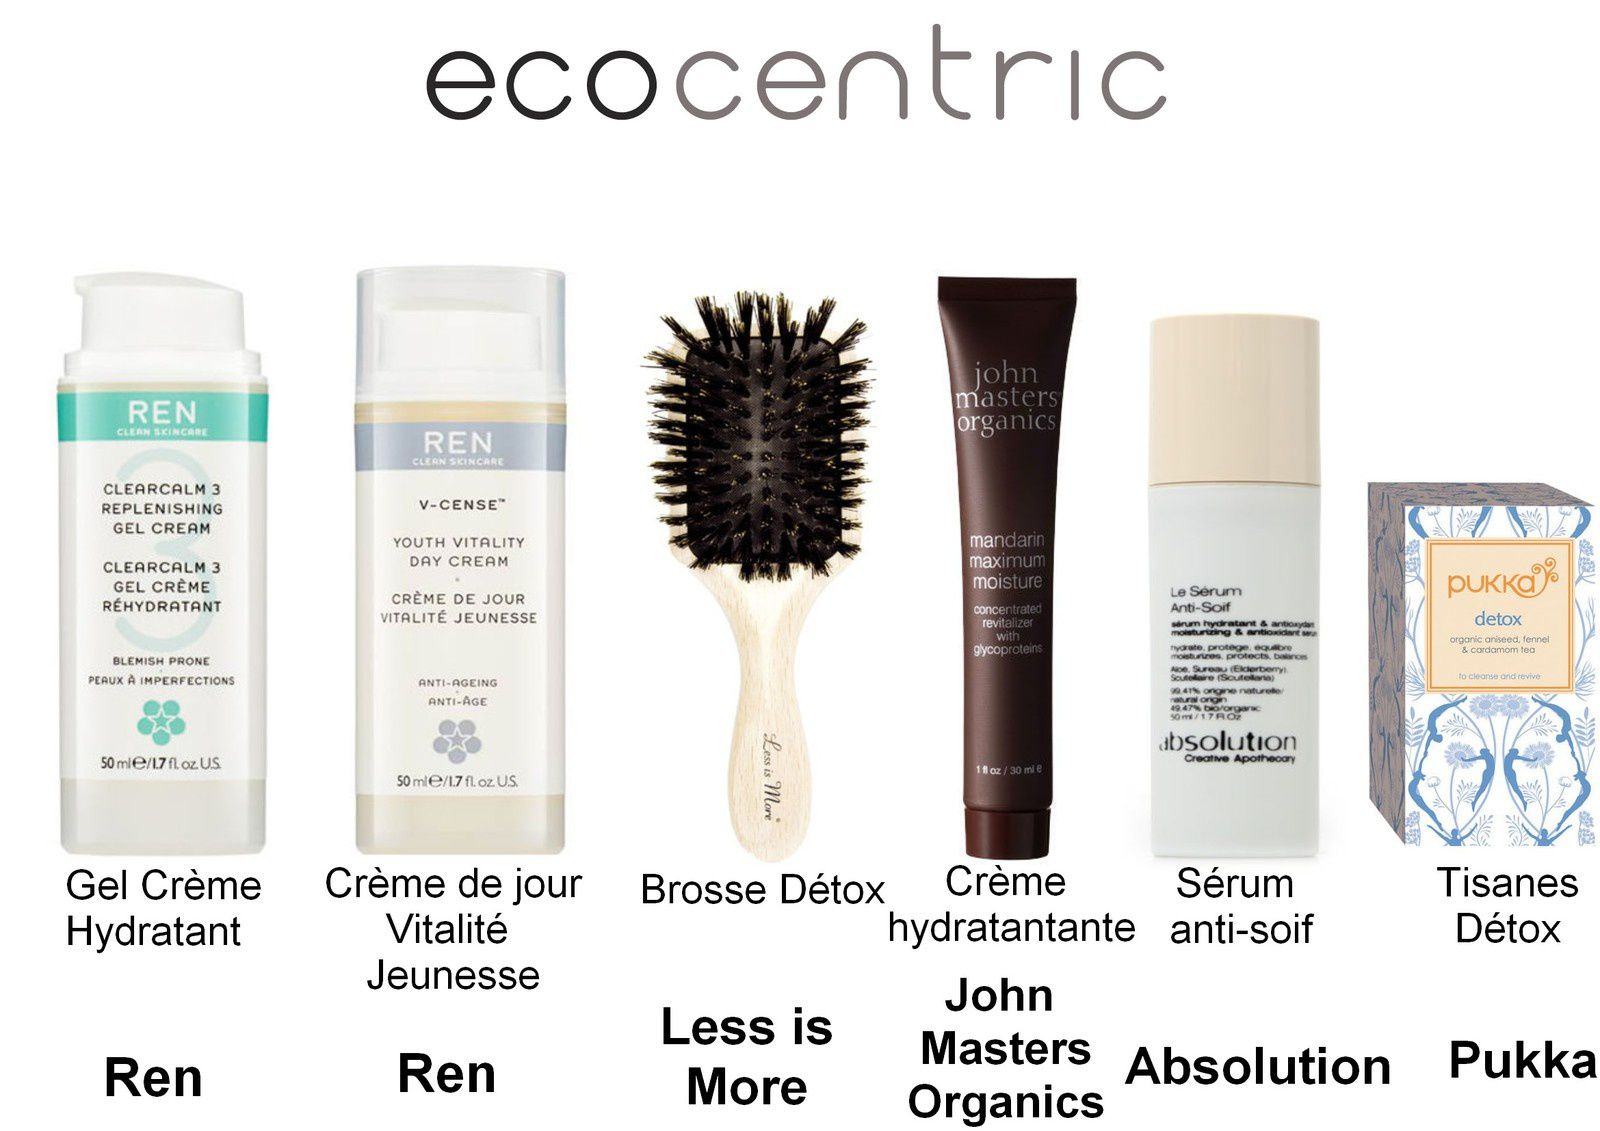 Be green, be chic, be Ecocentric! Wishlist inside!